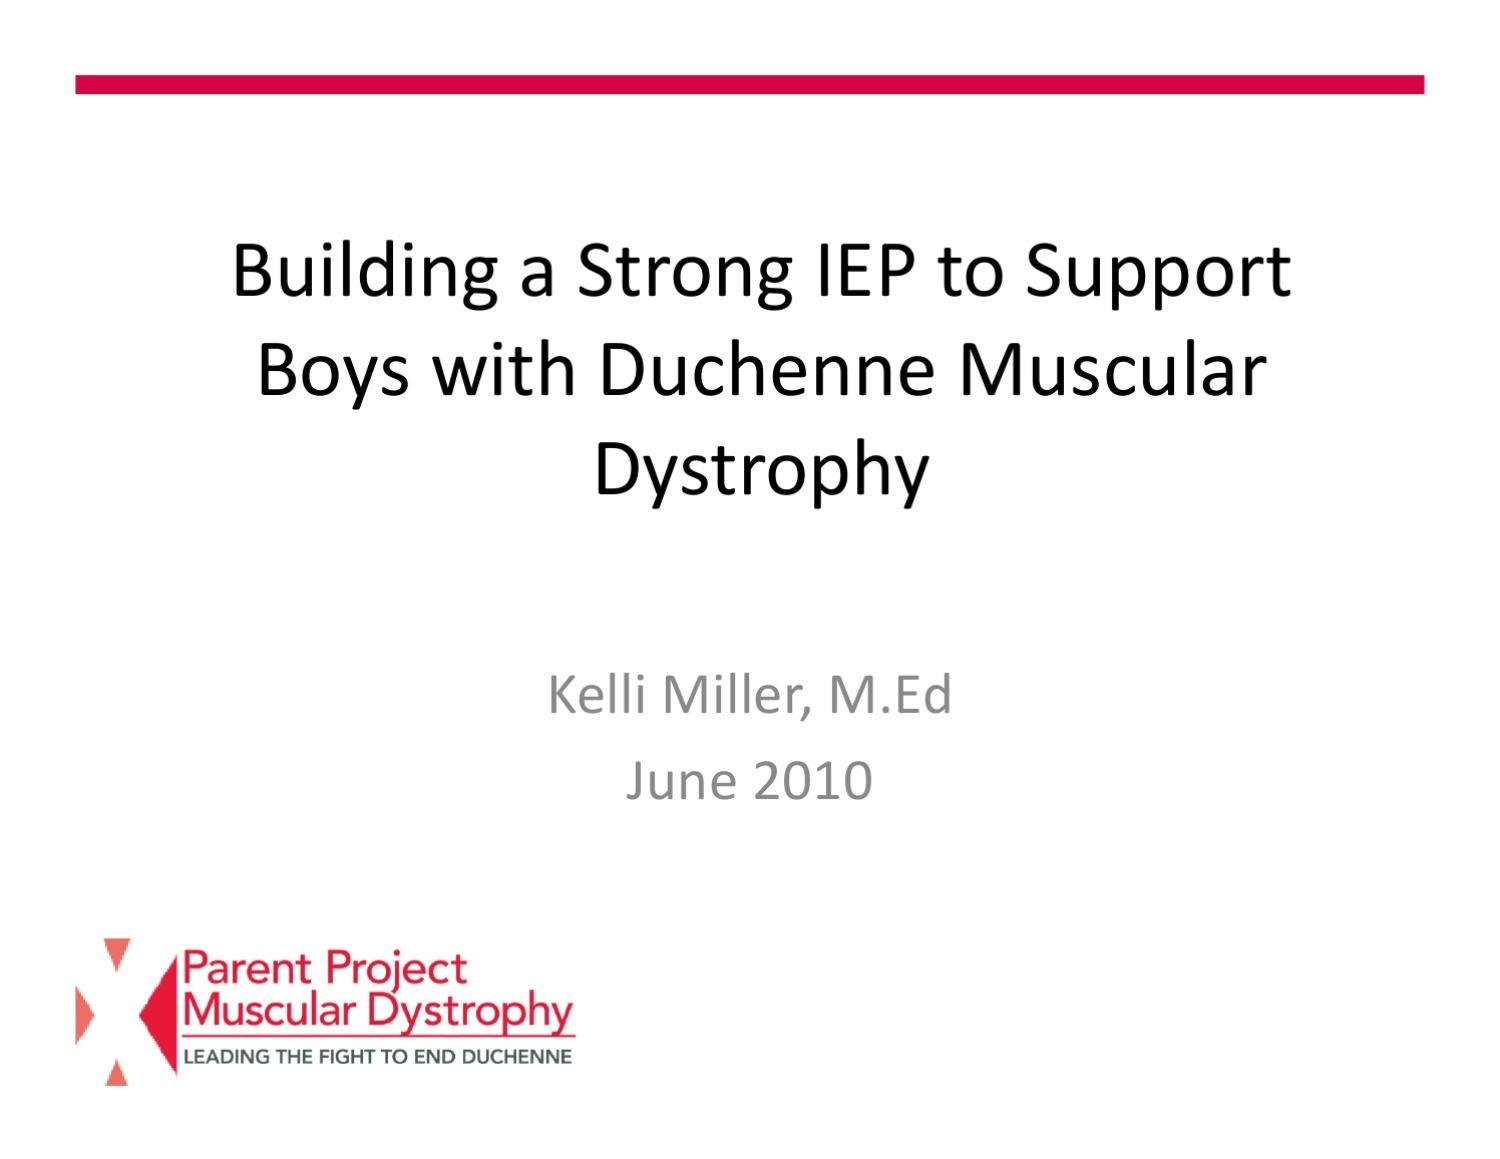 Duchenne Muscular Dystrophy Symptoms Management And Prognosis School Issues Putting Your Iep In Place By Parent Project